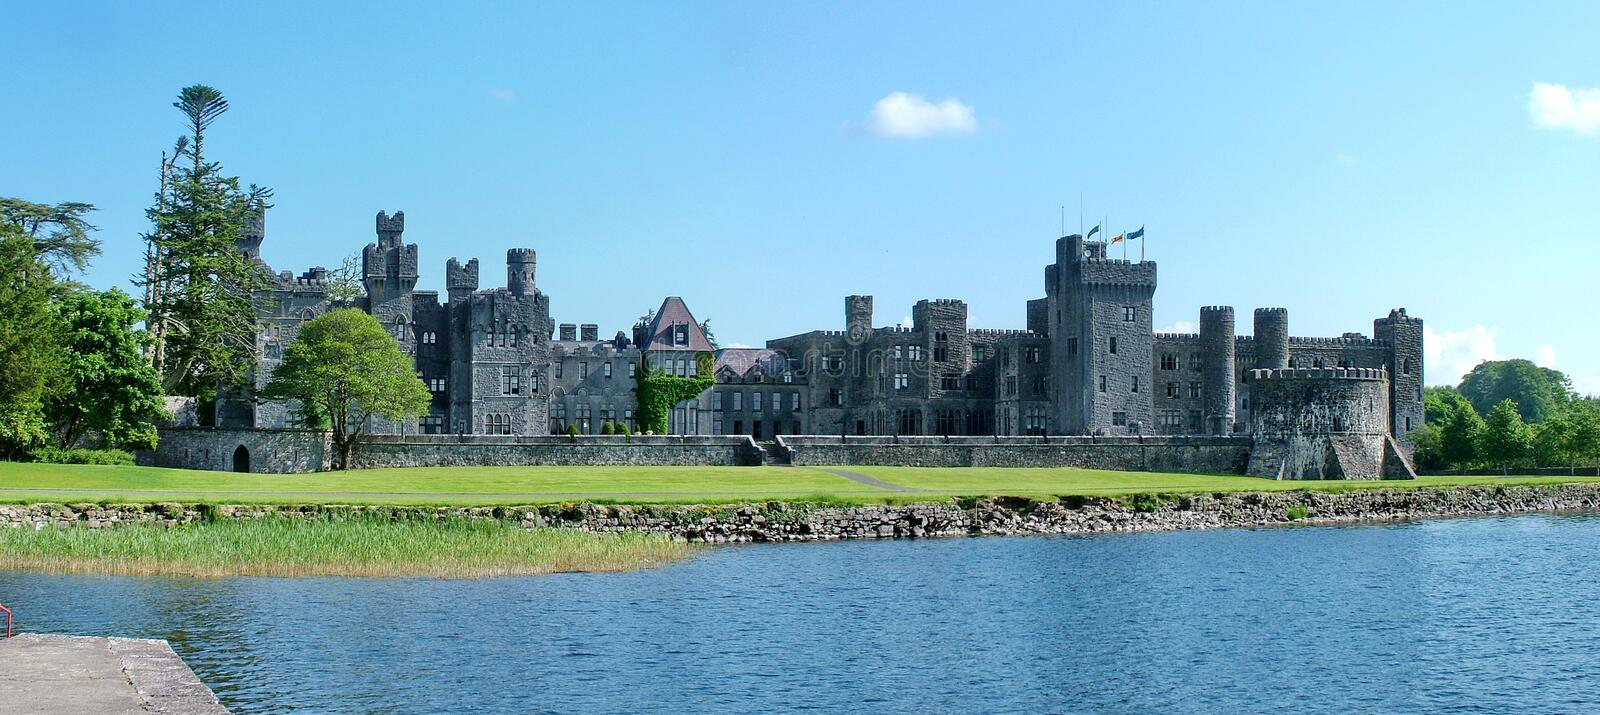 Panorama of Medieval Ashford castle royalty free stock photo